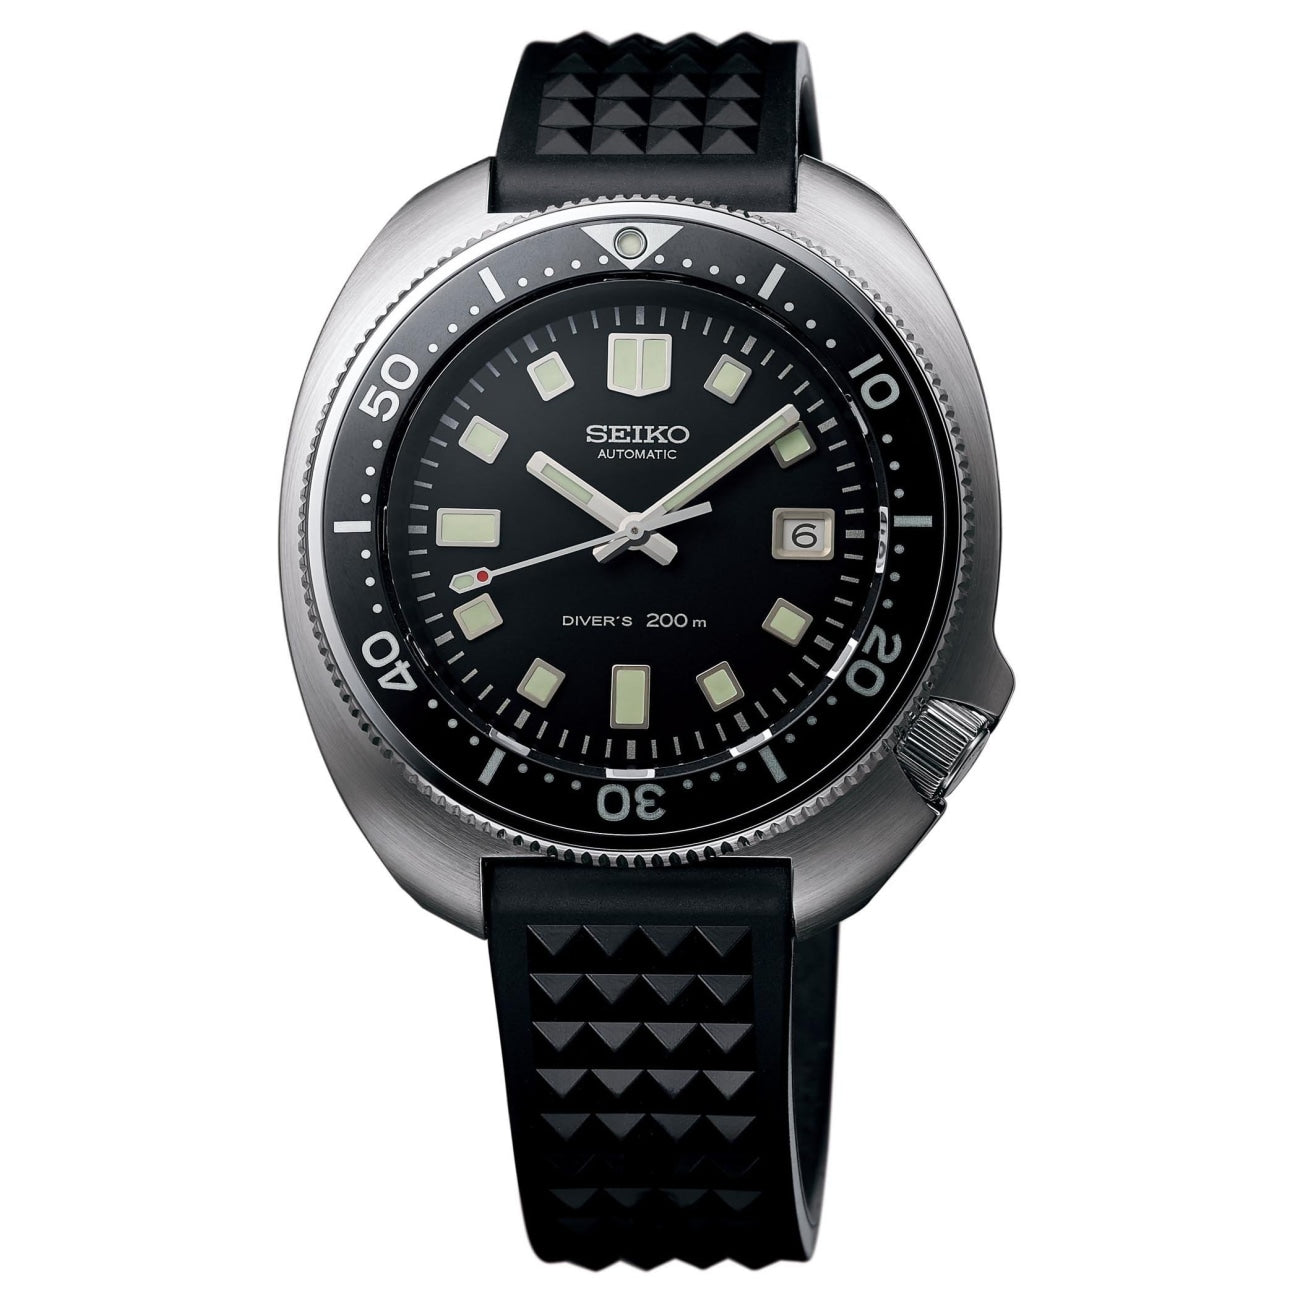 Seiko Watches - SEIKO 1970 DIVERS RE-CREATION LIMITED EDITION SLA033 | Manfredi Jewels